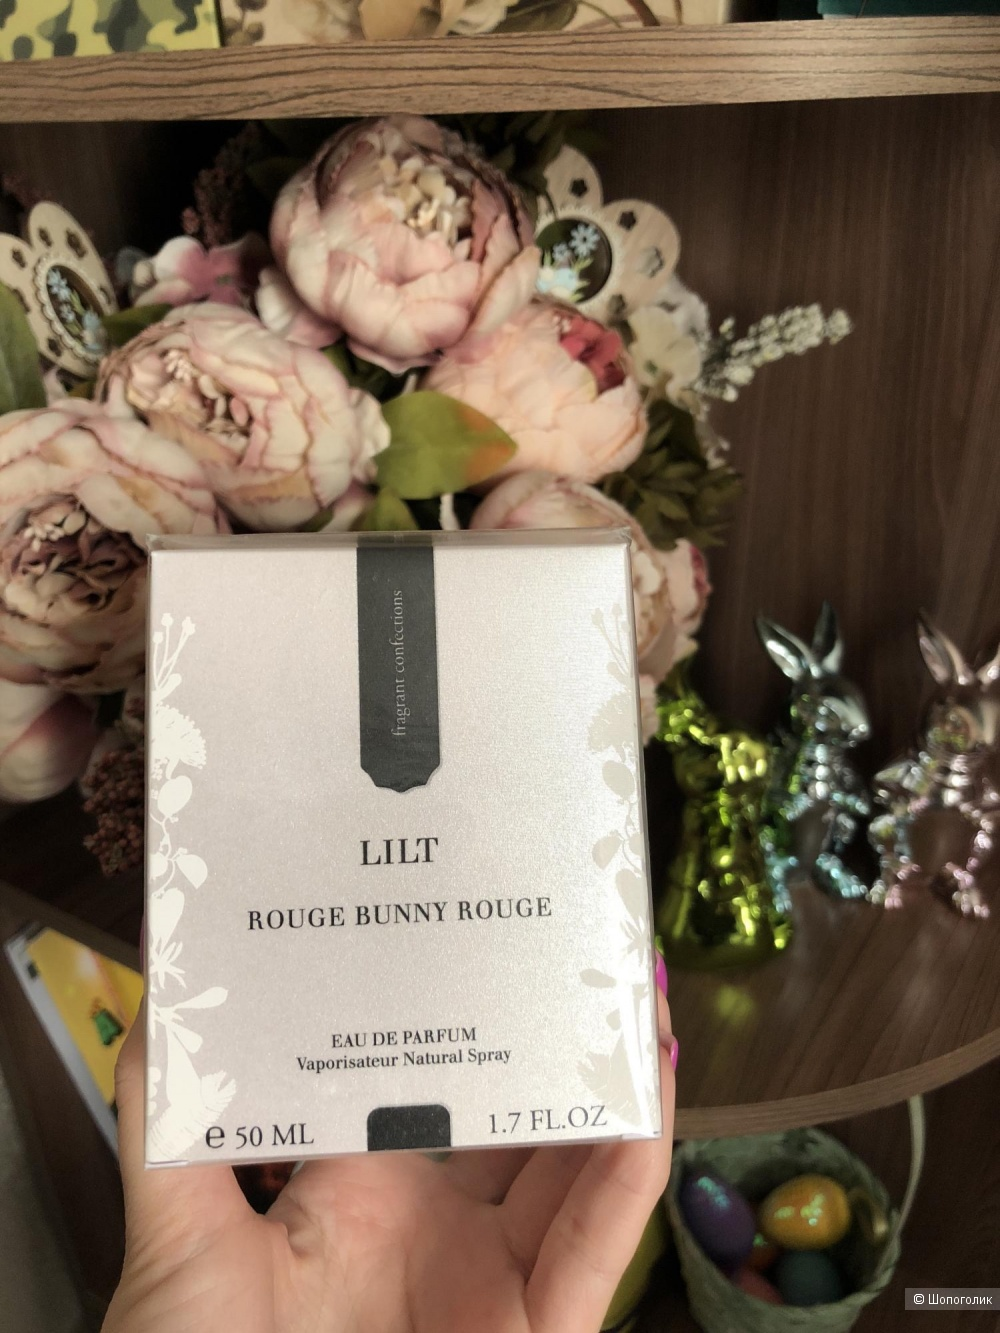 Rouge bunny rouge lilt 50ml edp